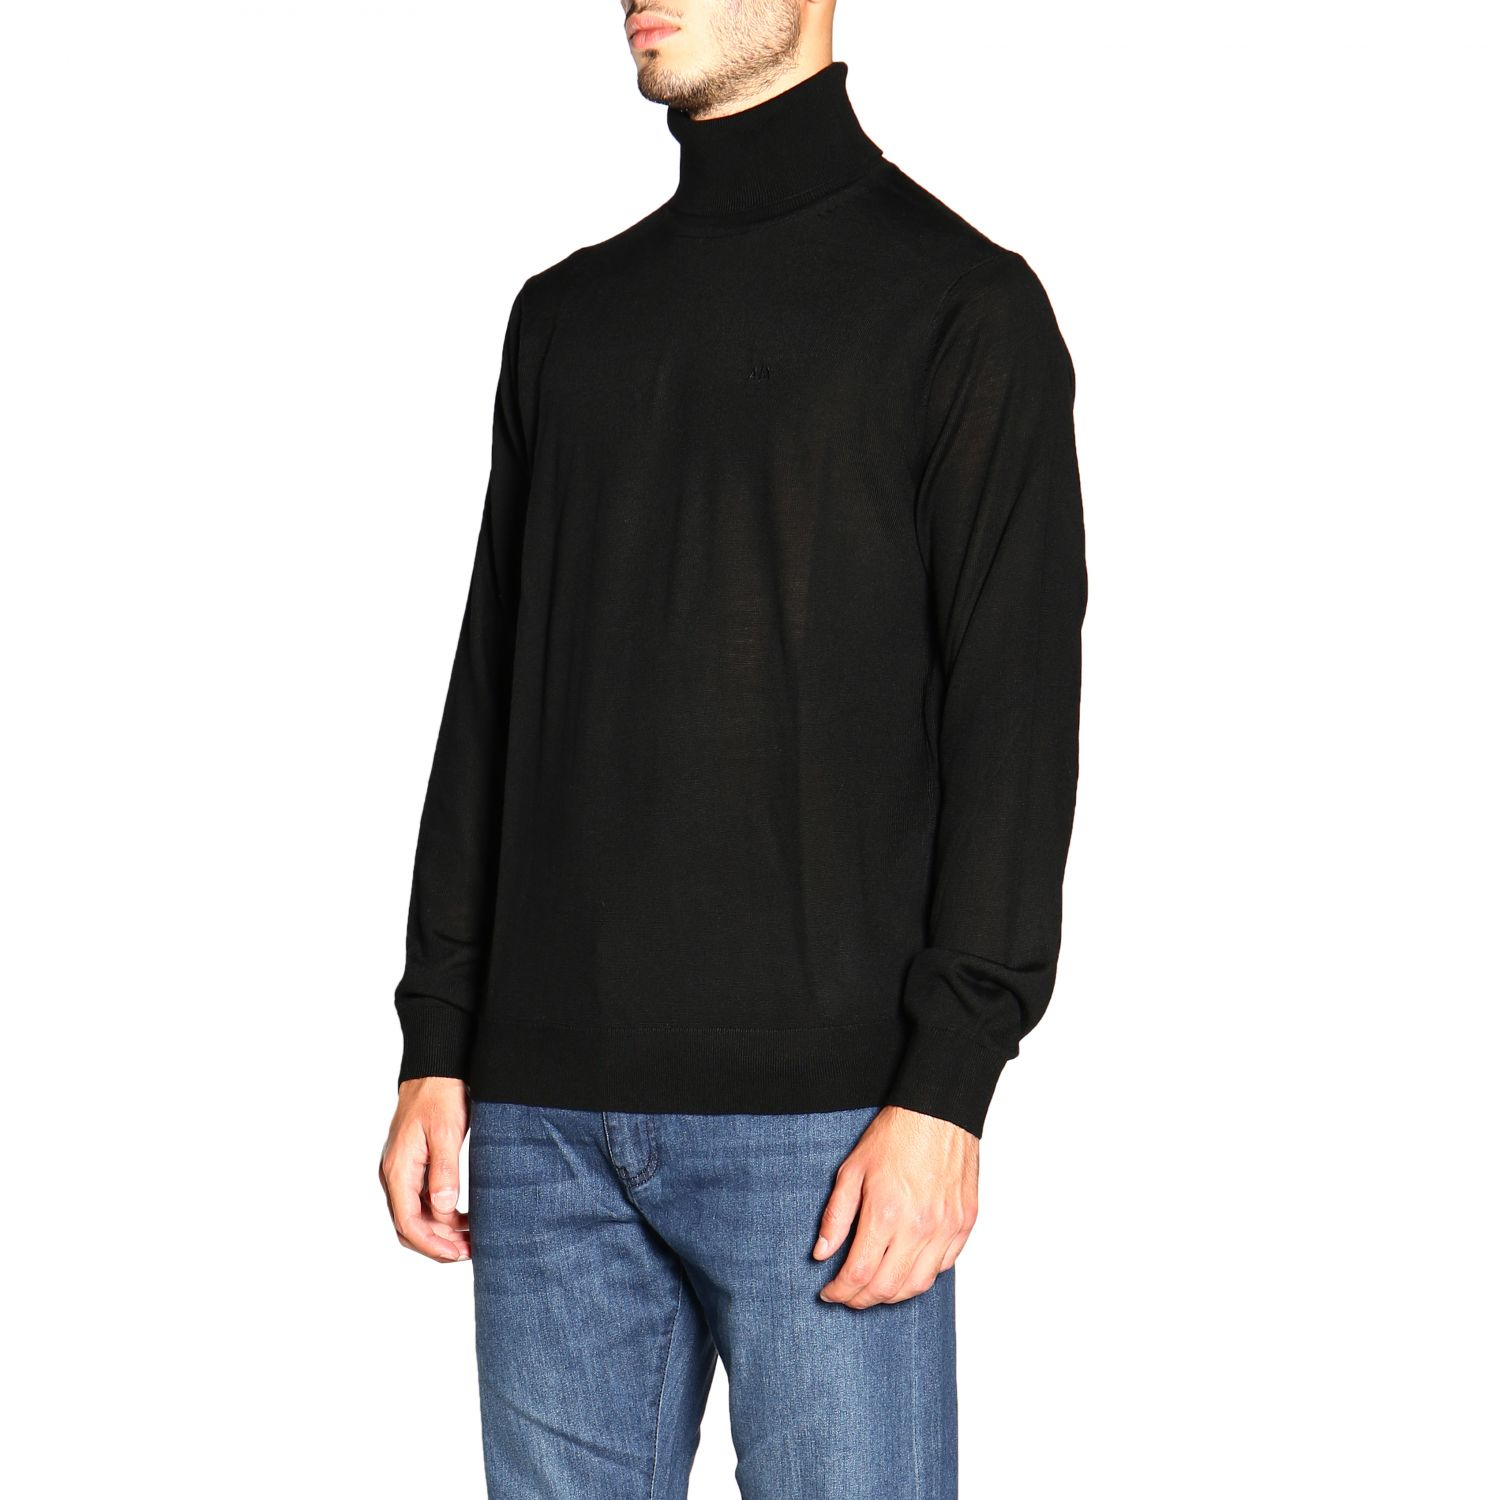 Sweater men Armani Exchange black 4